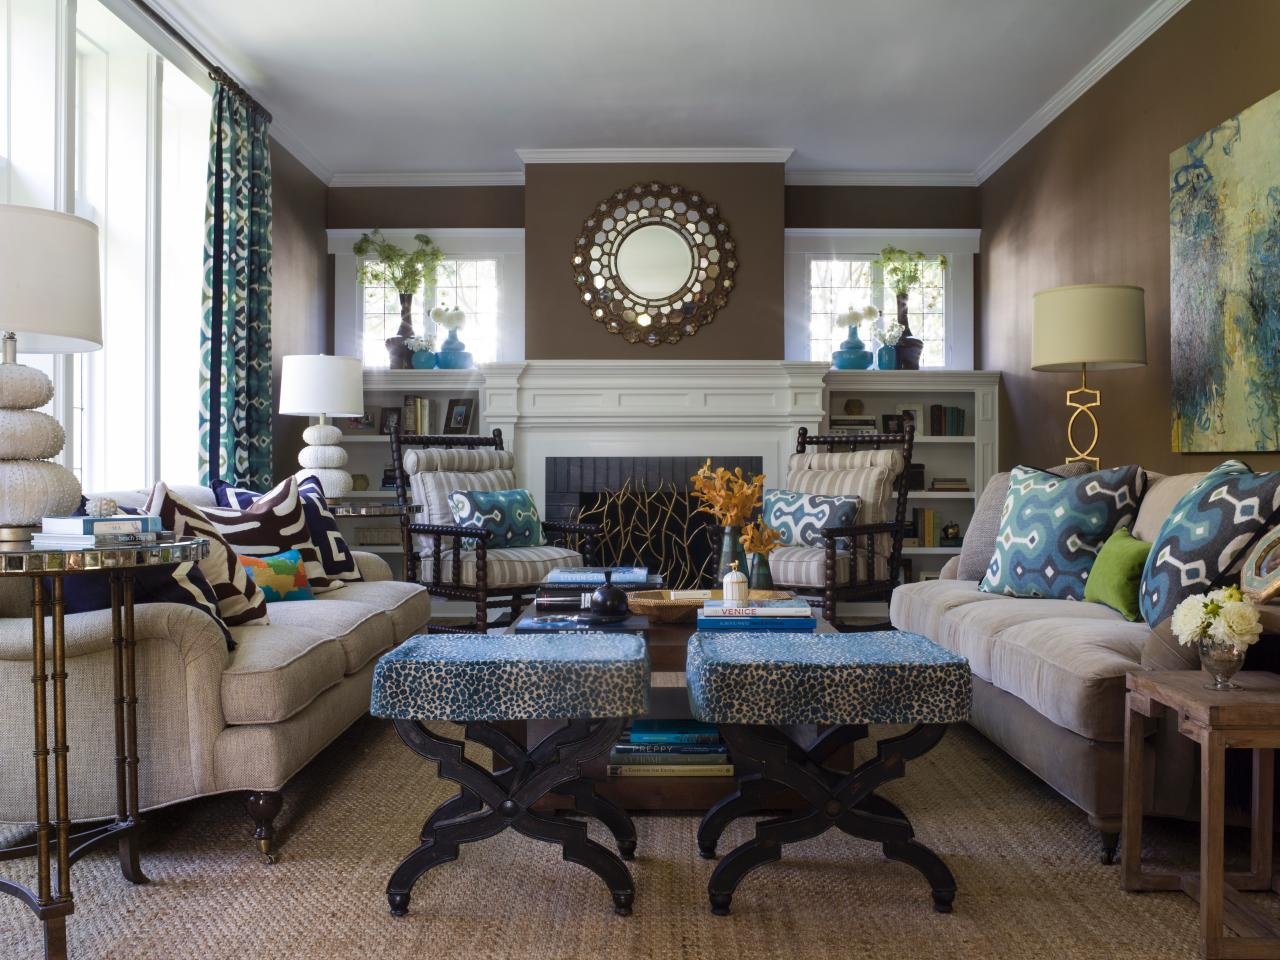 Best Colors For Living Rooms 2015 Hgtv 39s Favorite Trends To Try In 2015 Interior Design